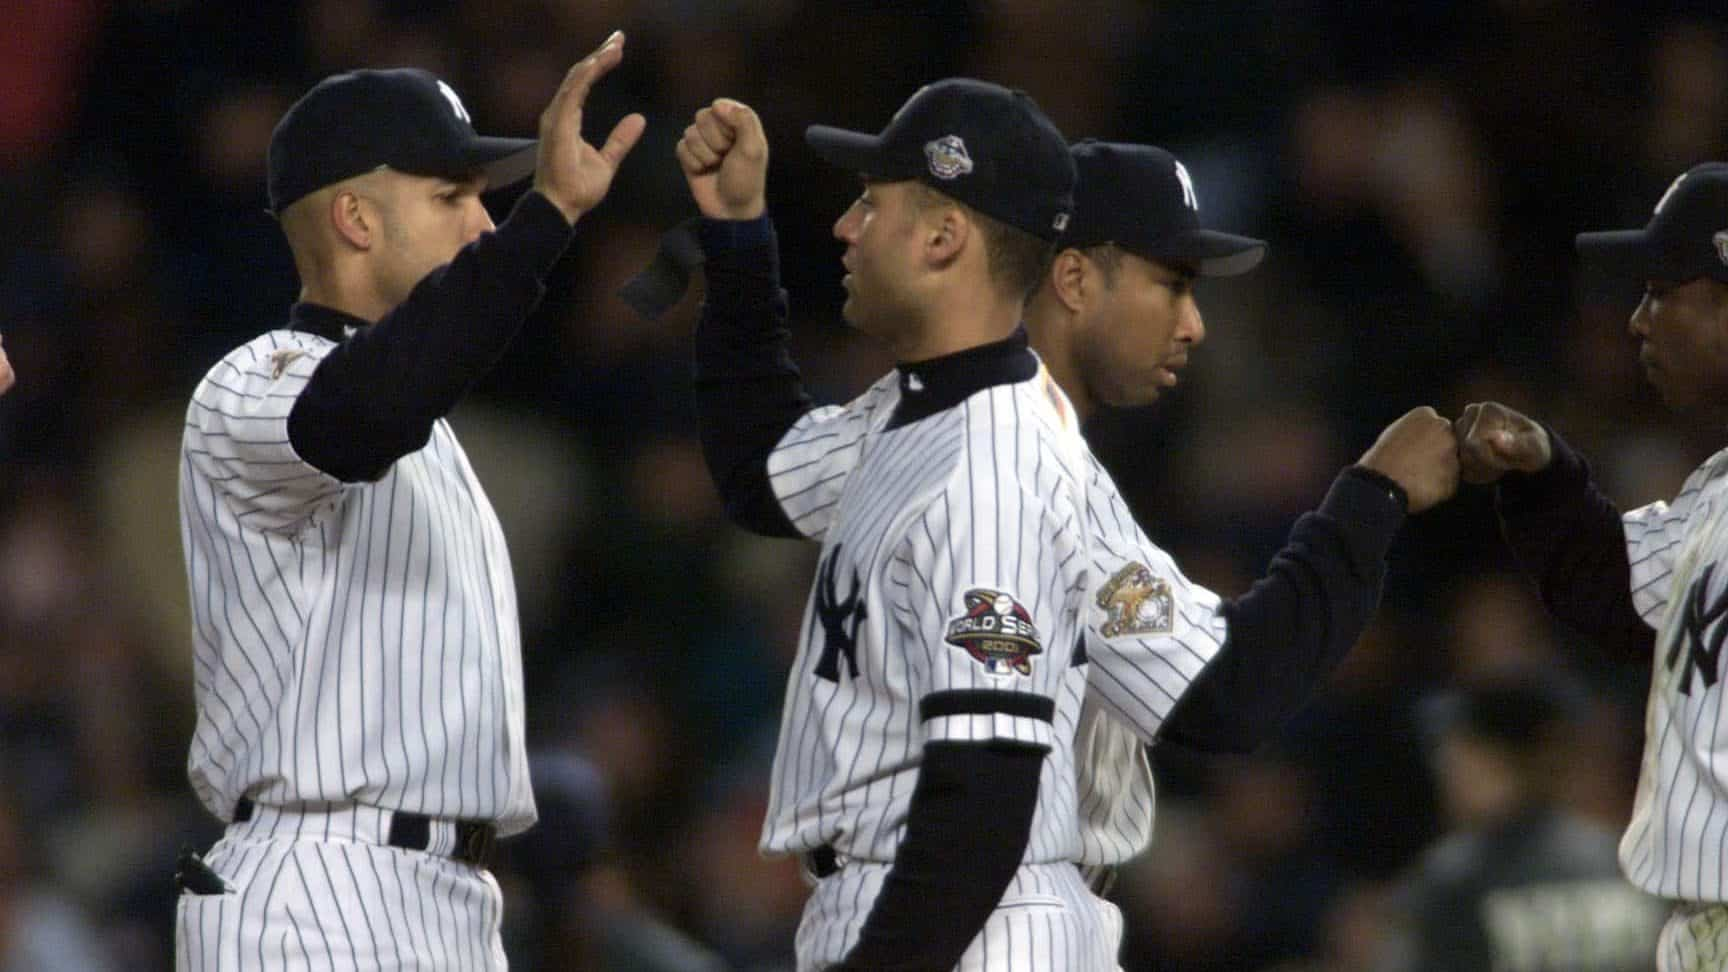 30 Oct 2001: Bernie Williams #51, Derek Jeter #2, Alfonso Soriano #33, and David Justice #28 of the New York Yankees celebrate after defeating the Arizona Diamondbacks in game 3 of the World Series at Yankee Stadium in New York, New York. The Yankees defeated the Diamondbacks 2-1. DIGITAL IMAGE